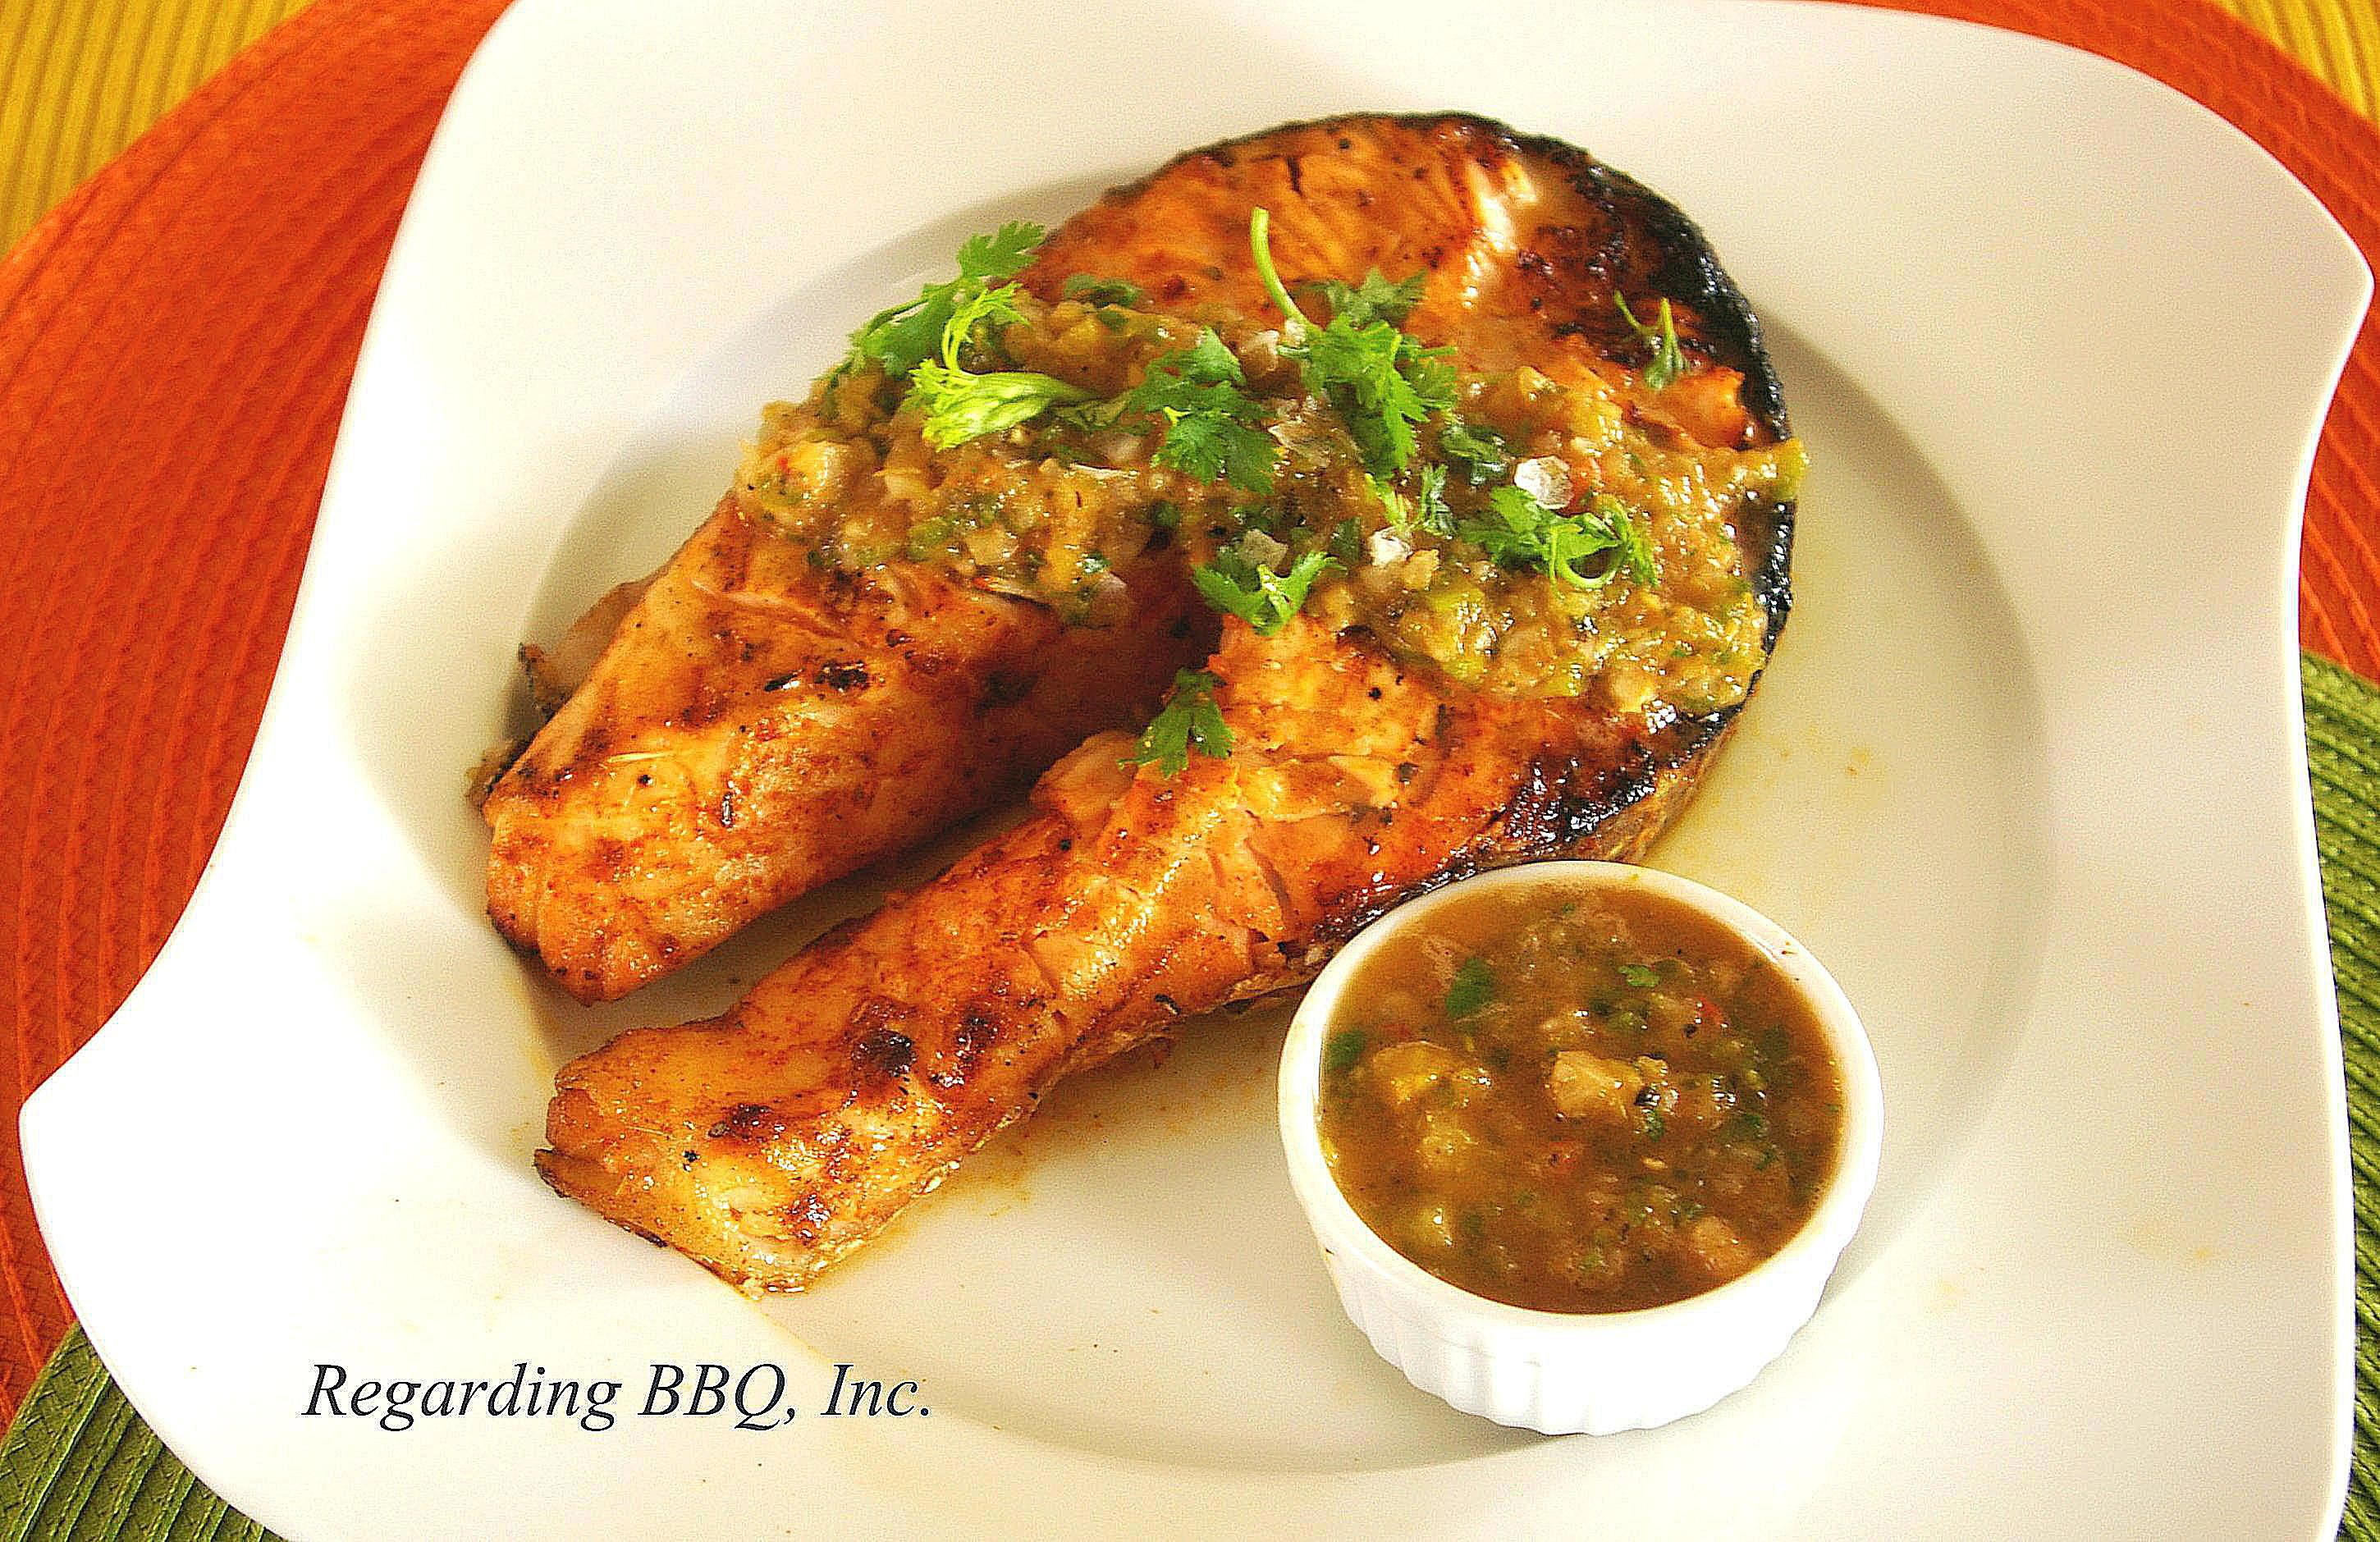 Chili-Tequila Salmon Steaks with Grilled Salsa